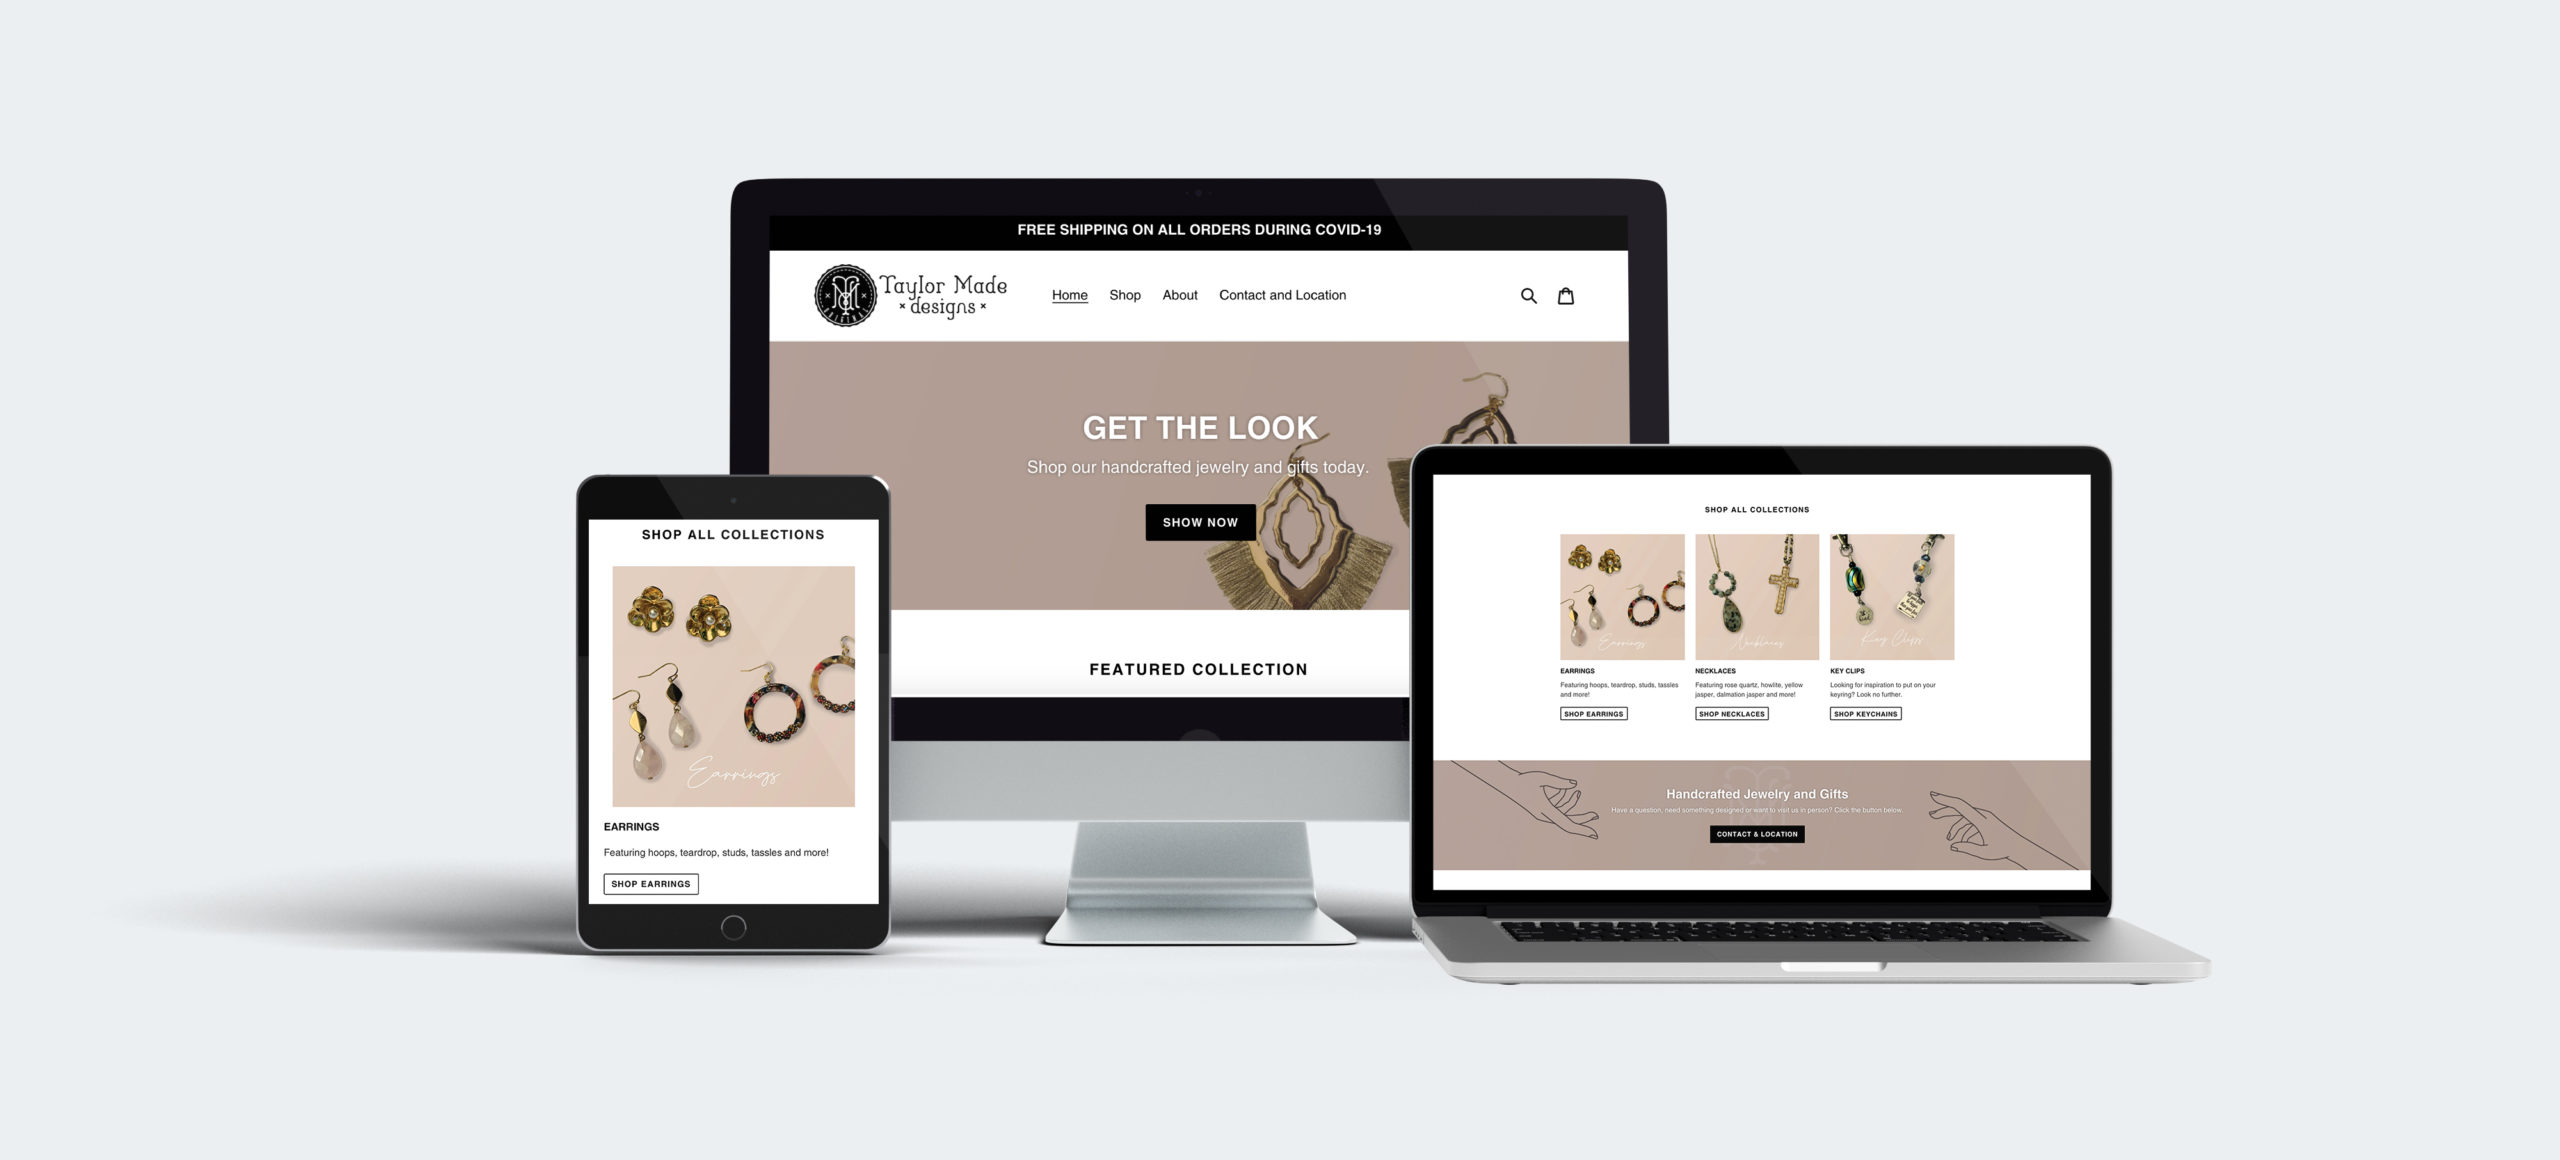 shopify website design and development